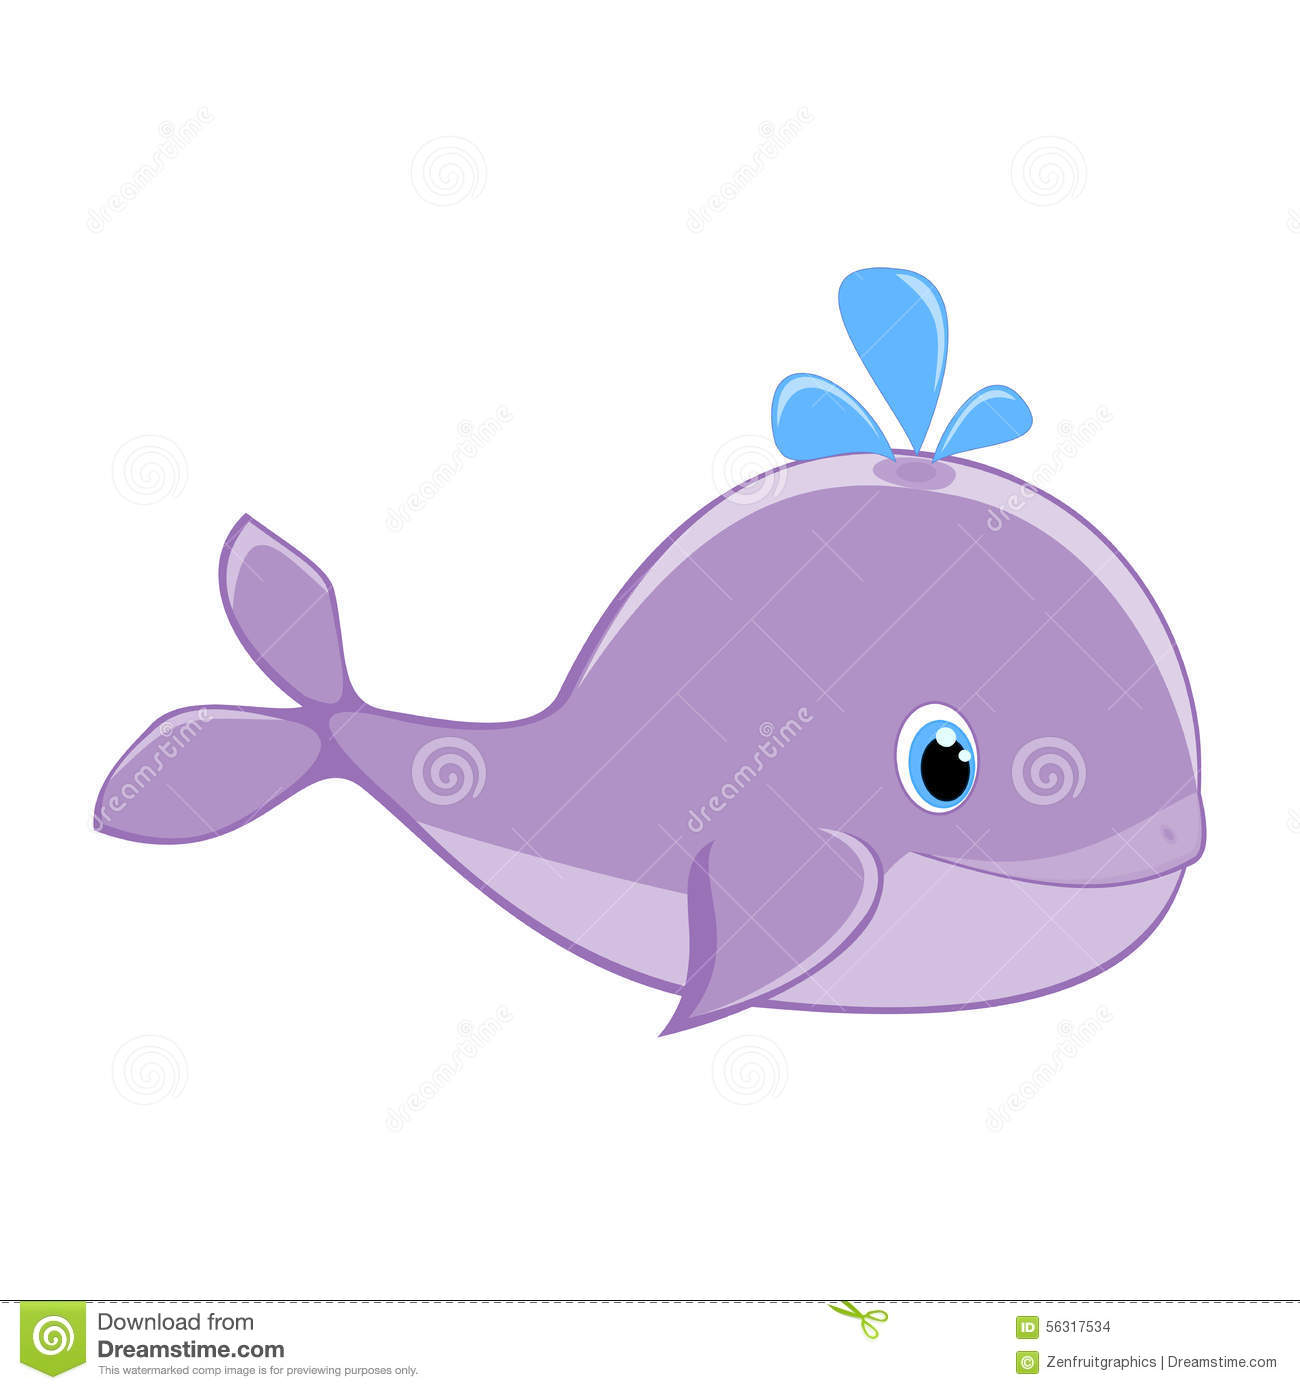 Cute whale in water cartoon isolated illustration stock photography - Baby Whale With Water Splash Vector Illustration Cute Cartoon Whale Vector Sea Mammal Vector Sea Life